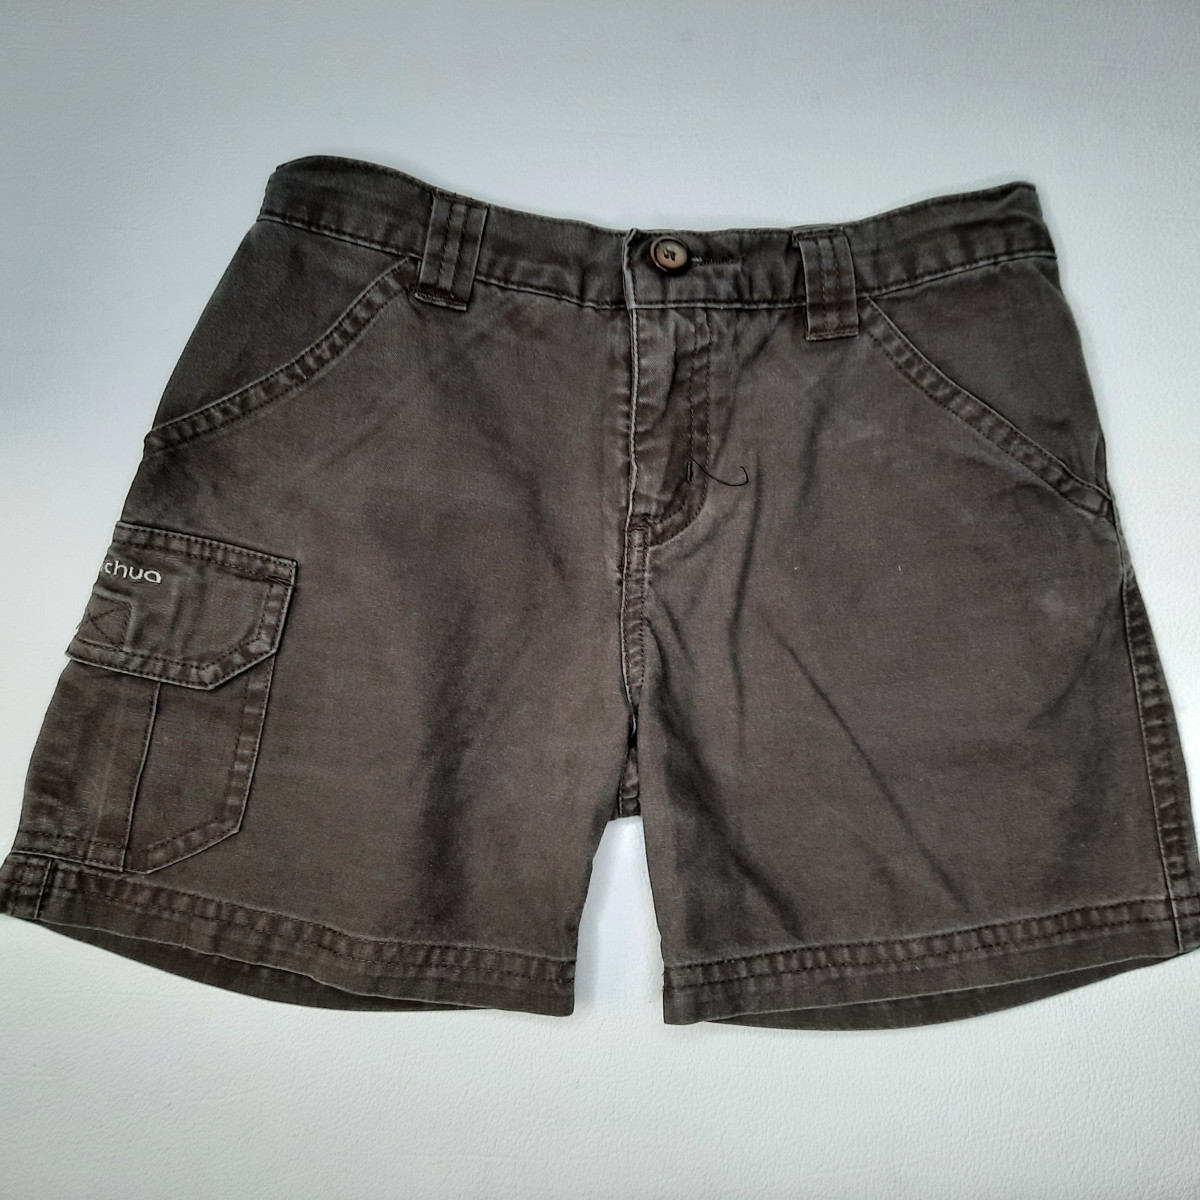 Shorts, Bermudas - photo 23